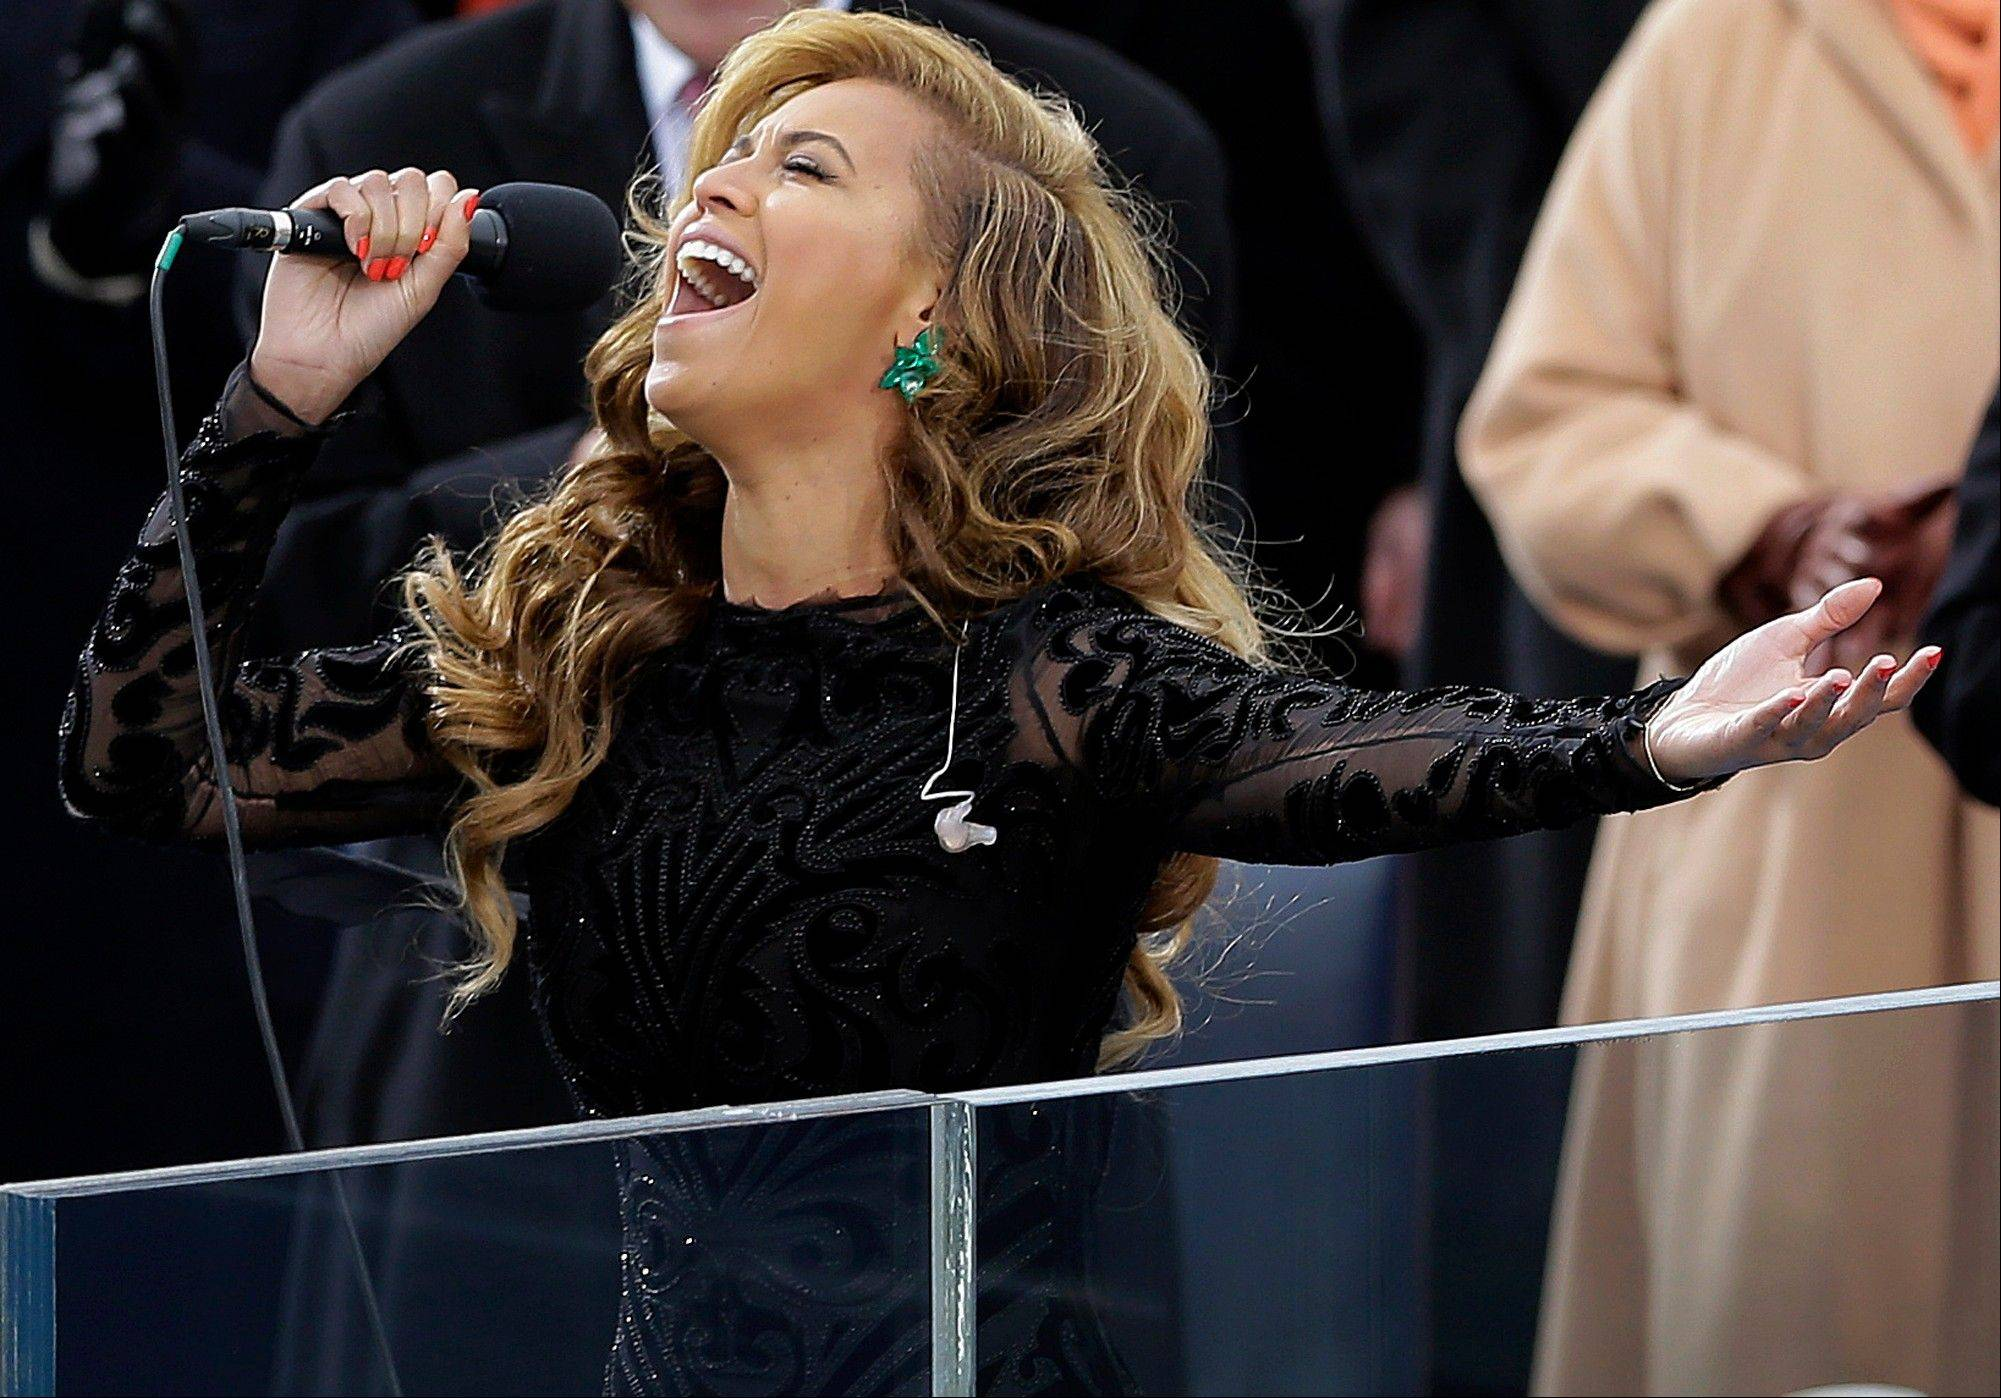 "Beyoncé is expected to face the media Thursday as she previews her halftime performance at the Super Bowl. But the focus will likely be on her performance at that other big event earlier this month. The superstar hasn't spoken publicly since it was alleged that she lip-synced her rendition of ""The Star-Spangled Banner"" at President Barack Obama's inauguration last week."